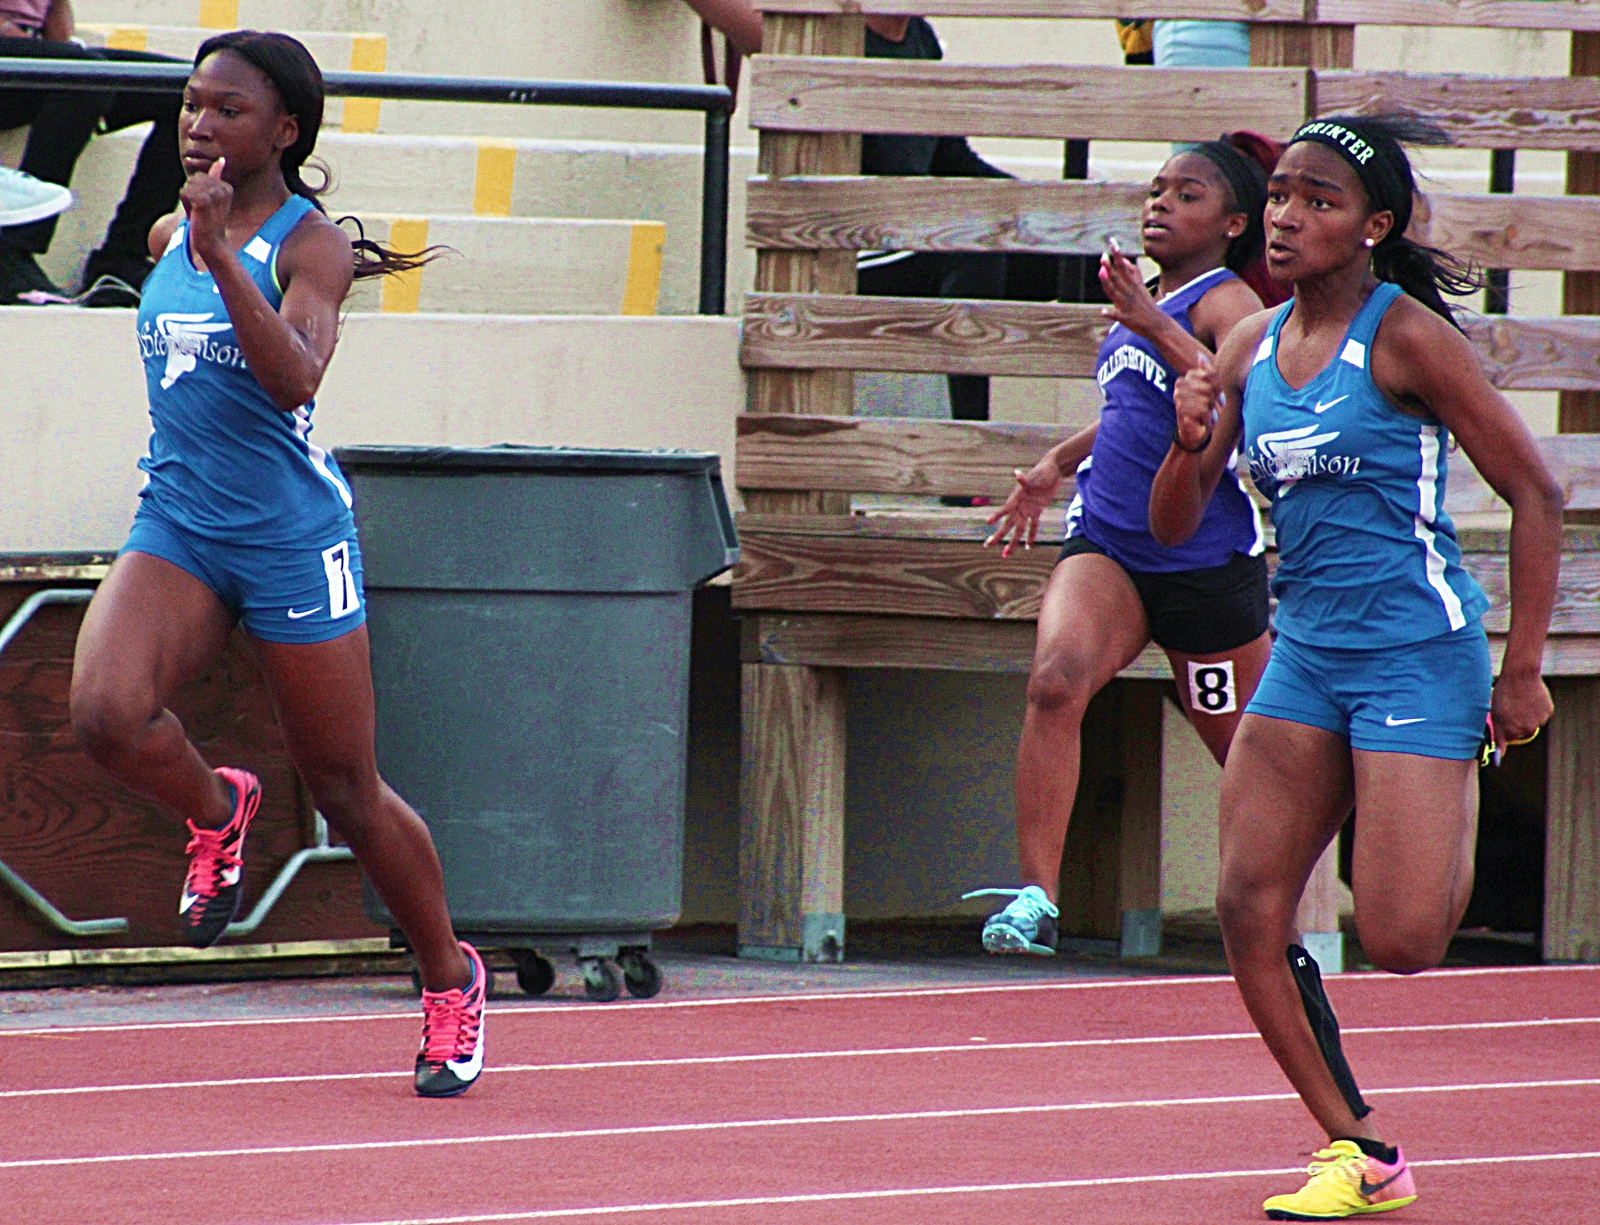 Stephenson's Marisa Mayfield (far right) moves in front in the 100 meter dash as teammate Amanda King (far left) and Miller Grove's Travyonna Manuel work hard to keep up.